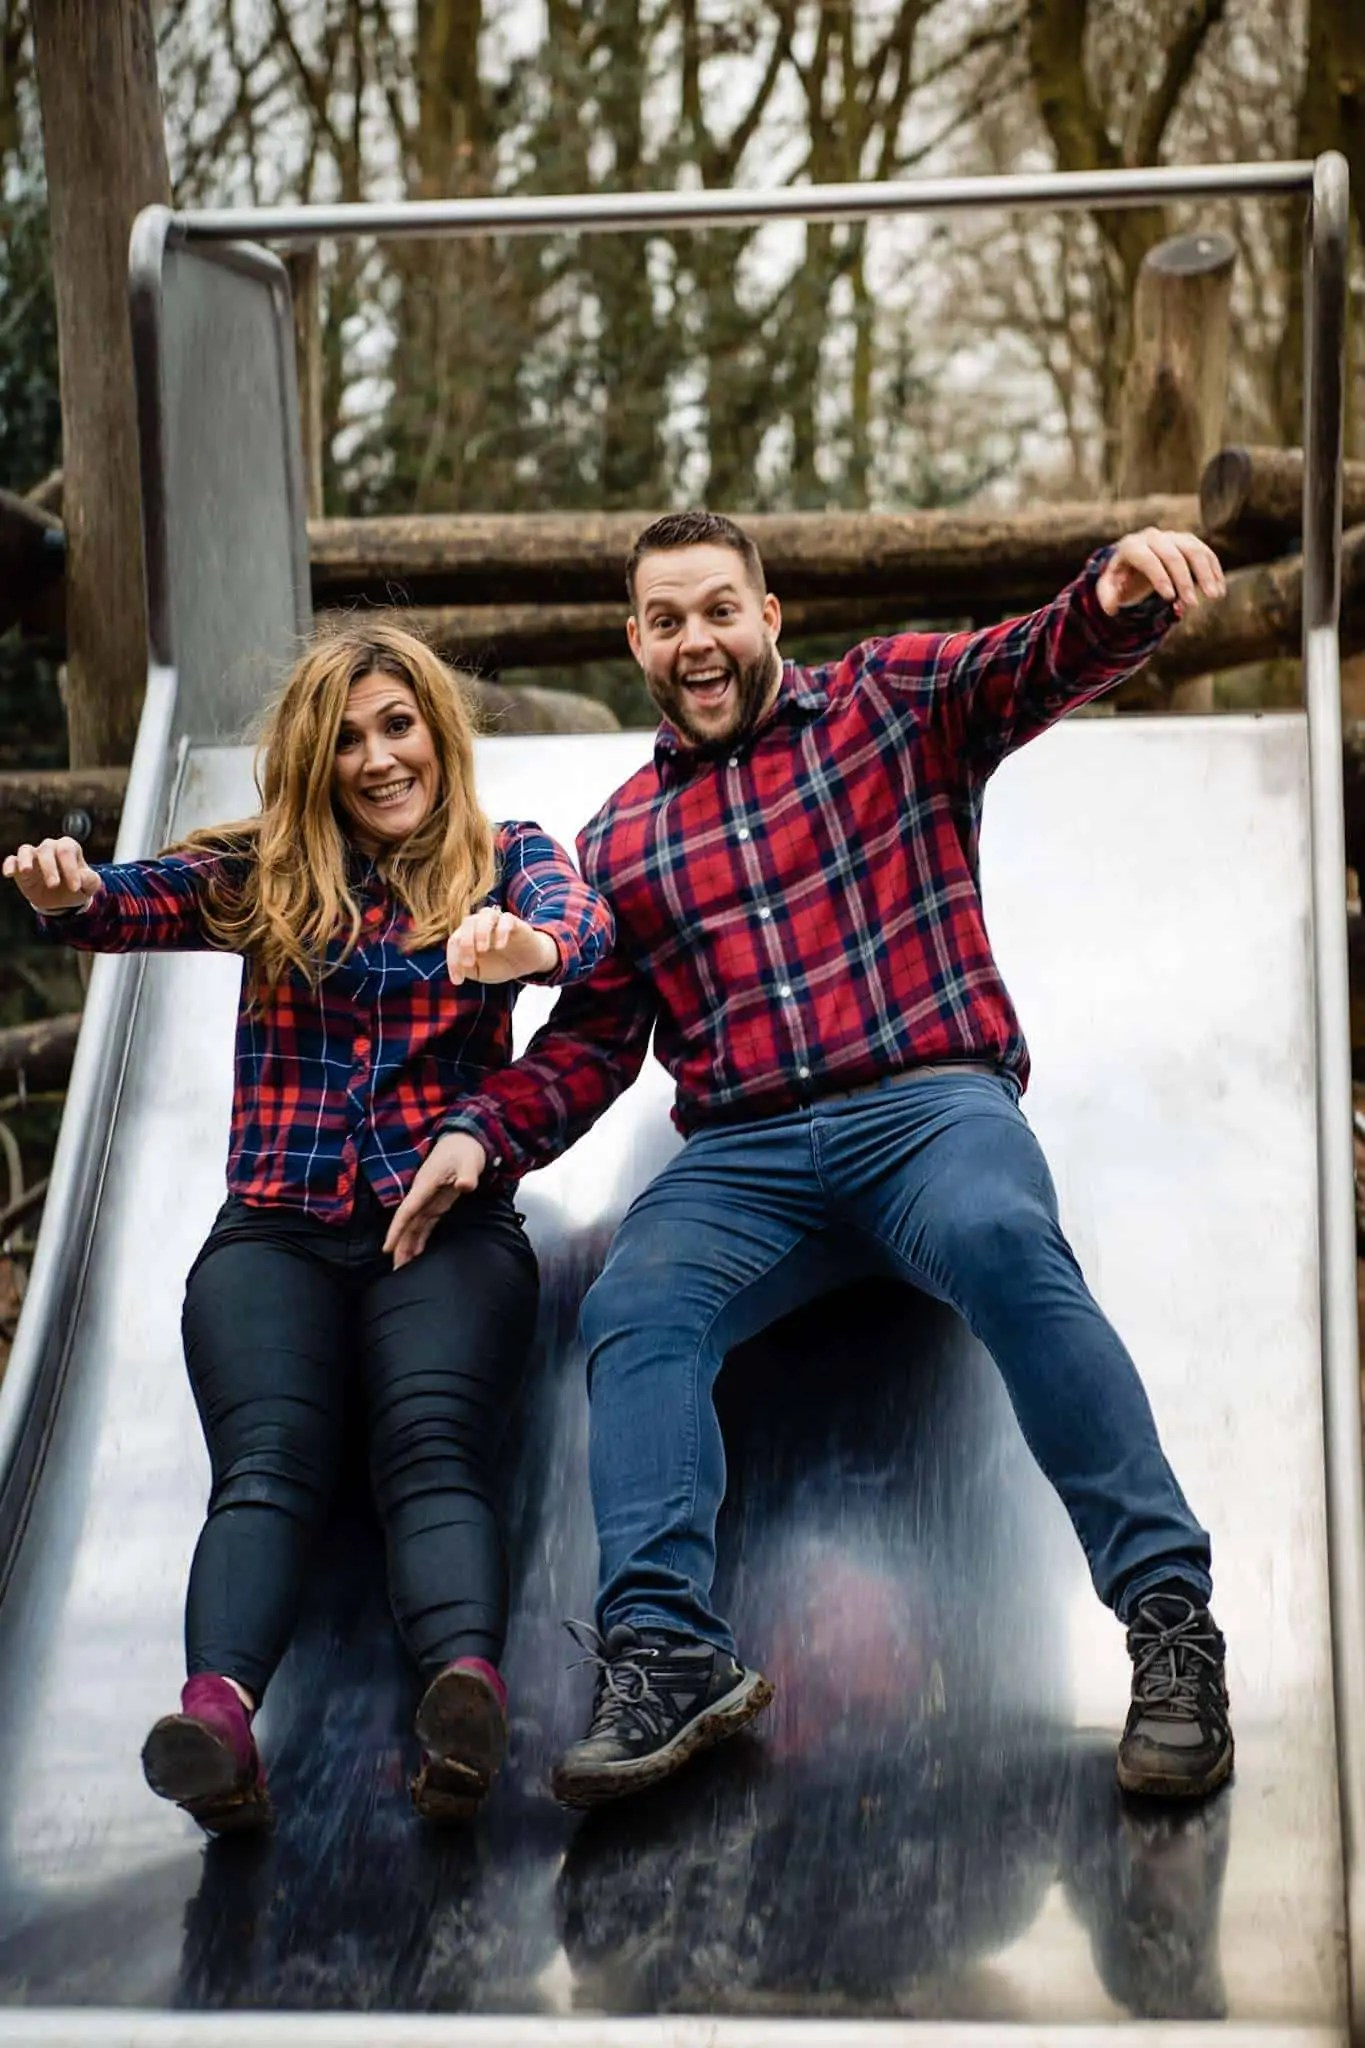 An engaged couple having fun on a slide during an engagement shoot